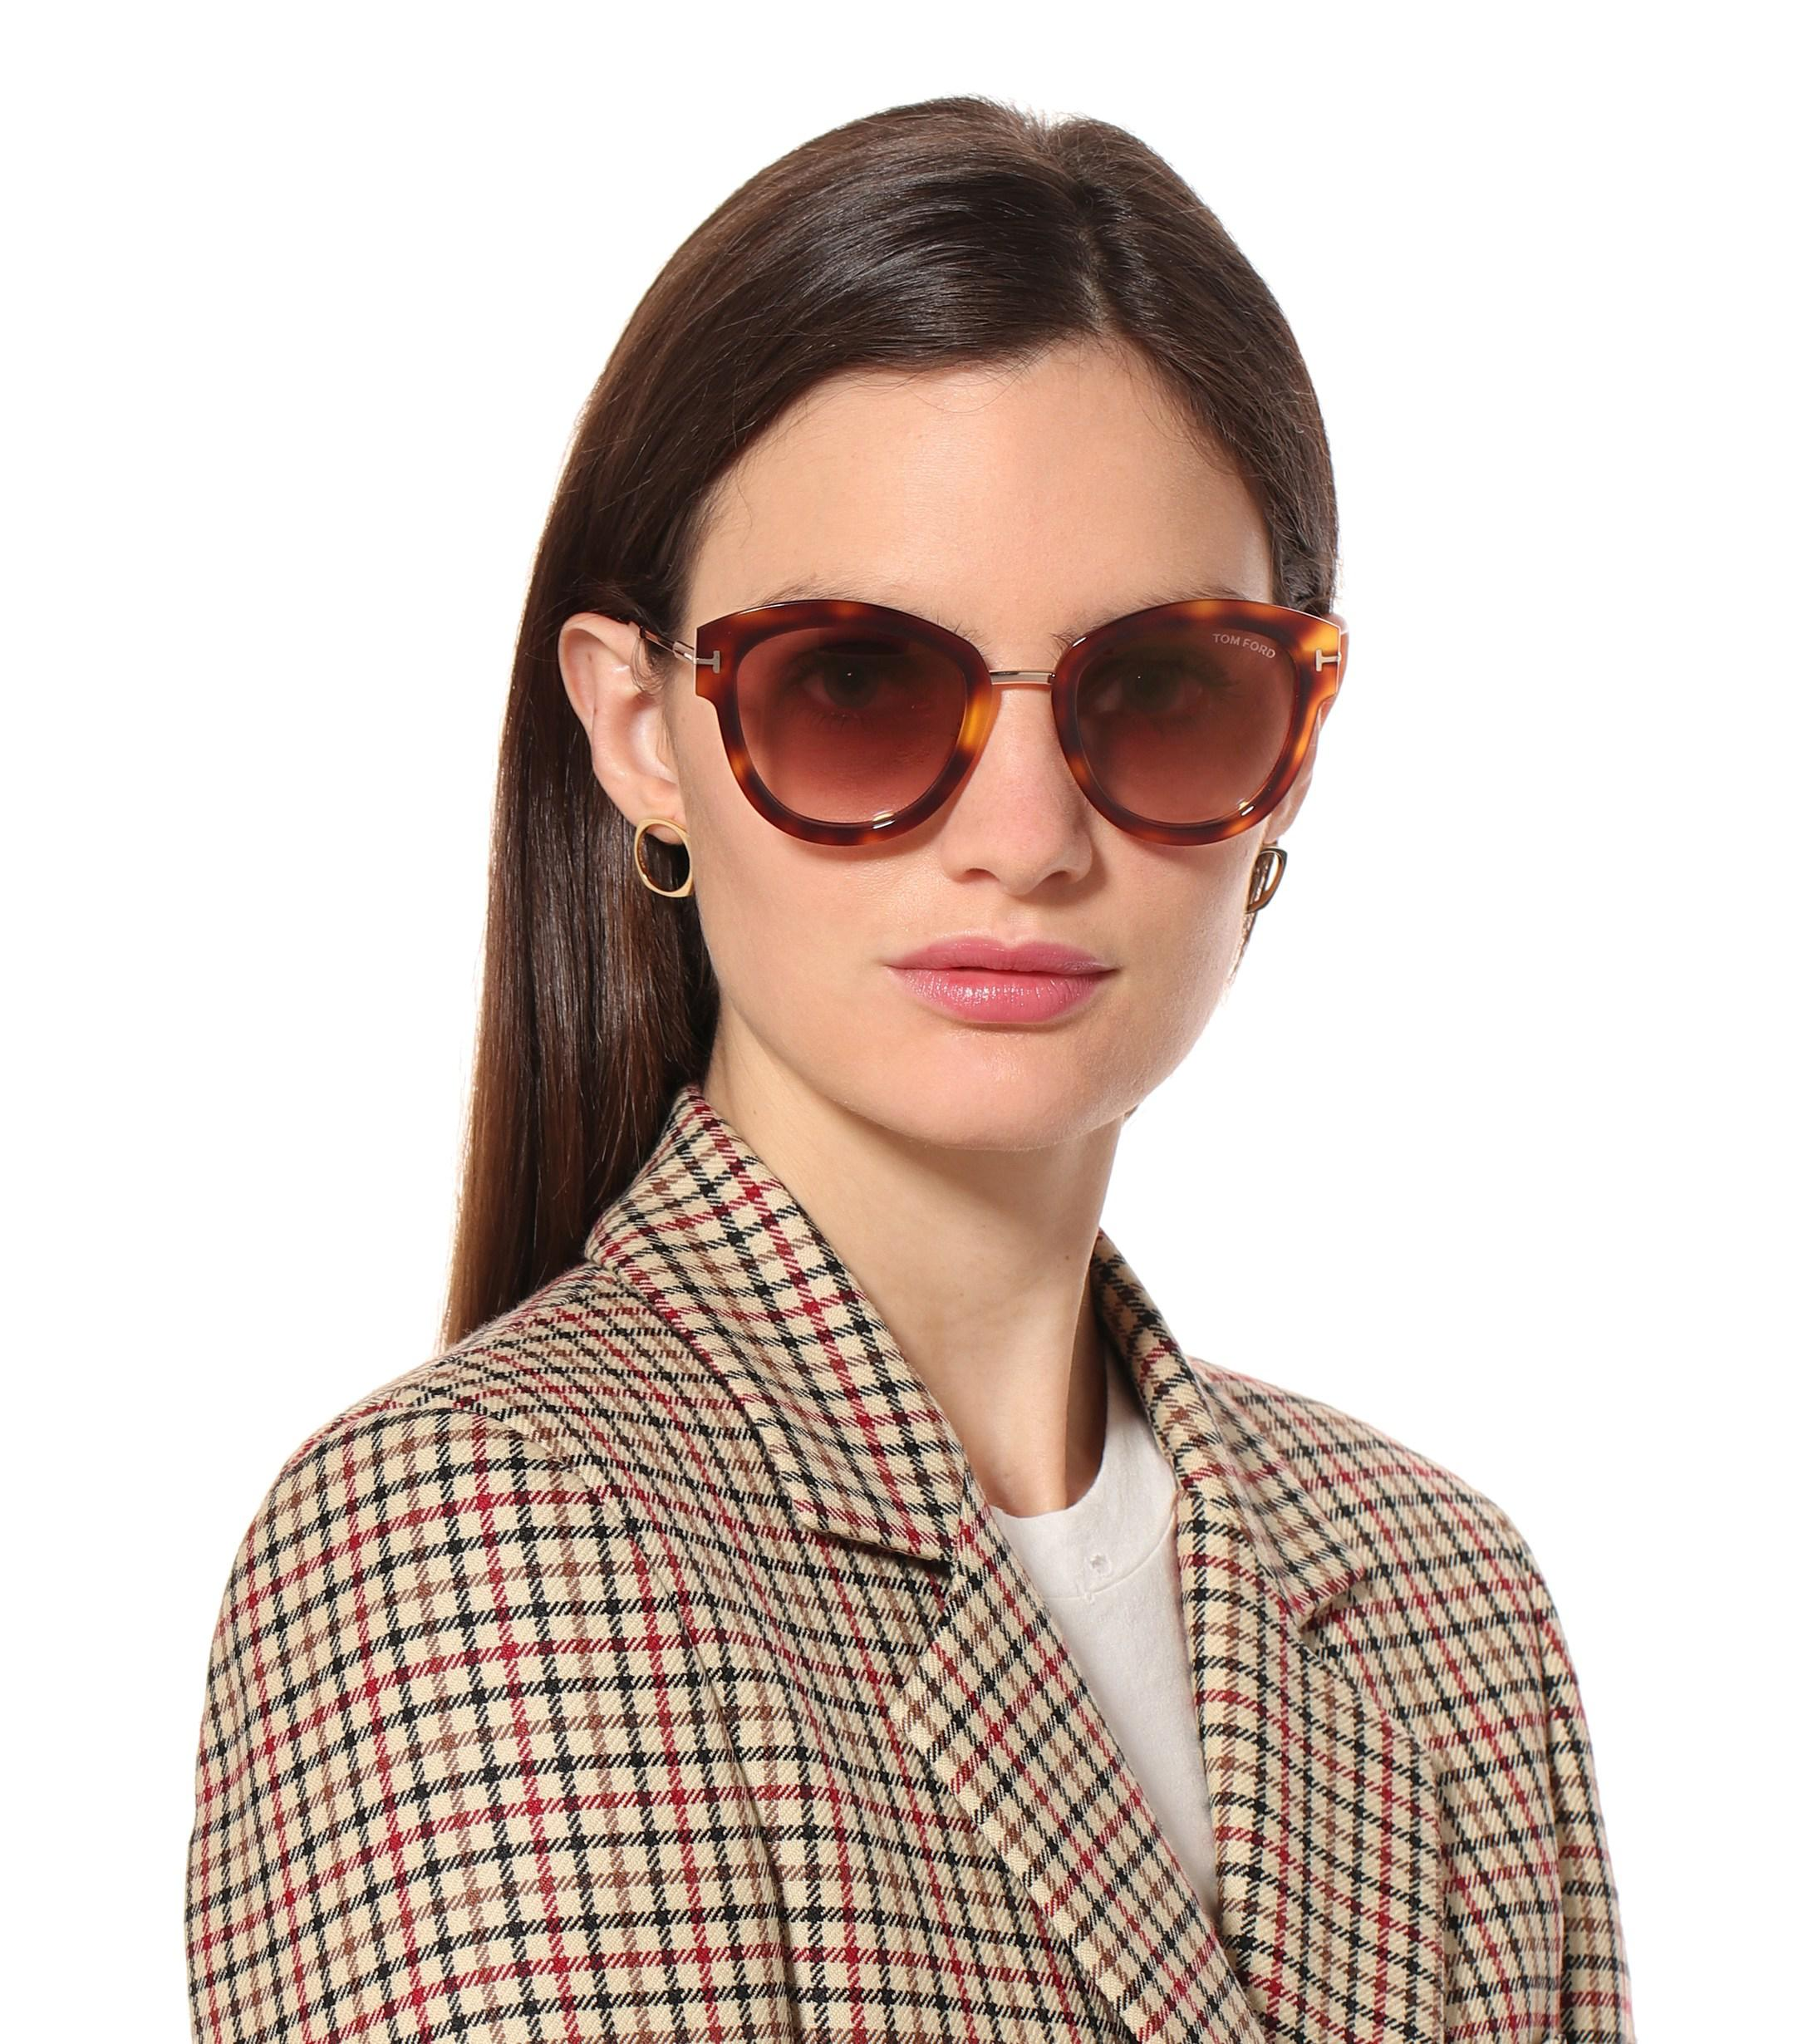 e0e7ccfe220 Tom Ford Mia Round Sunglasses in Brown - Lyst